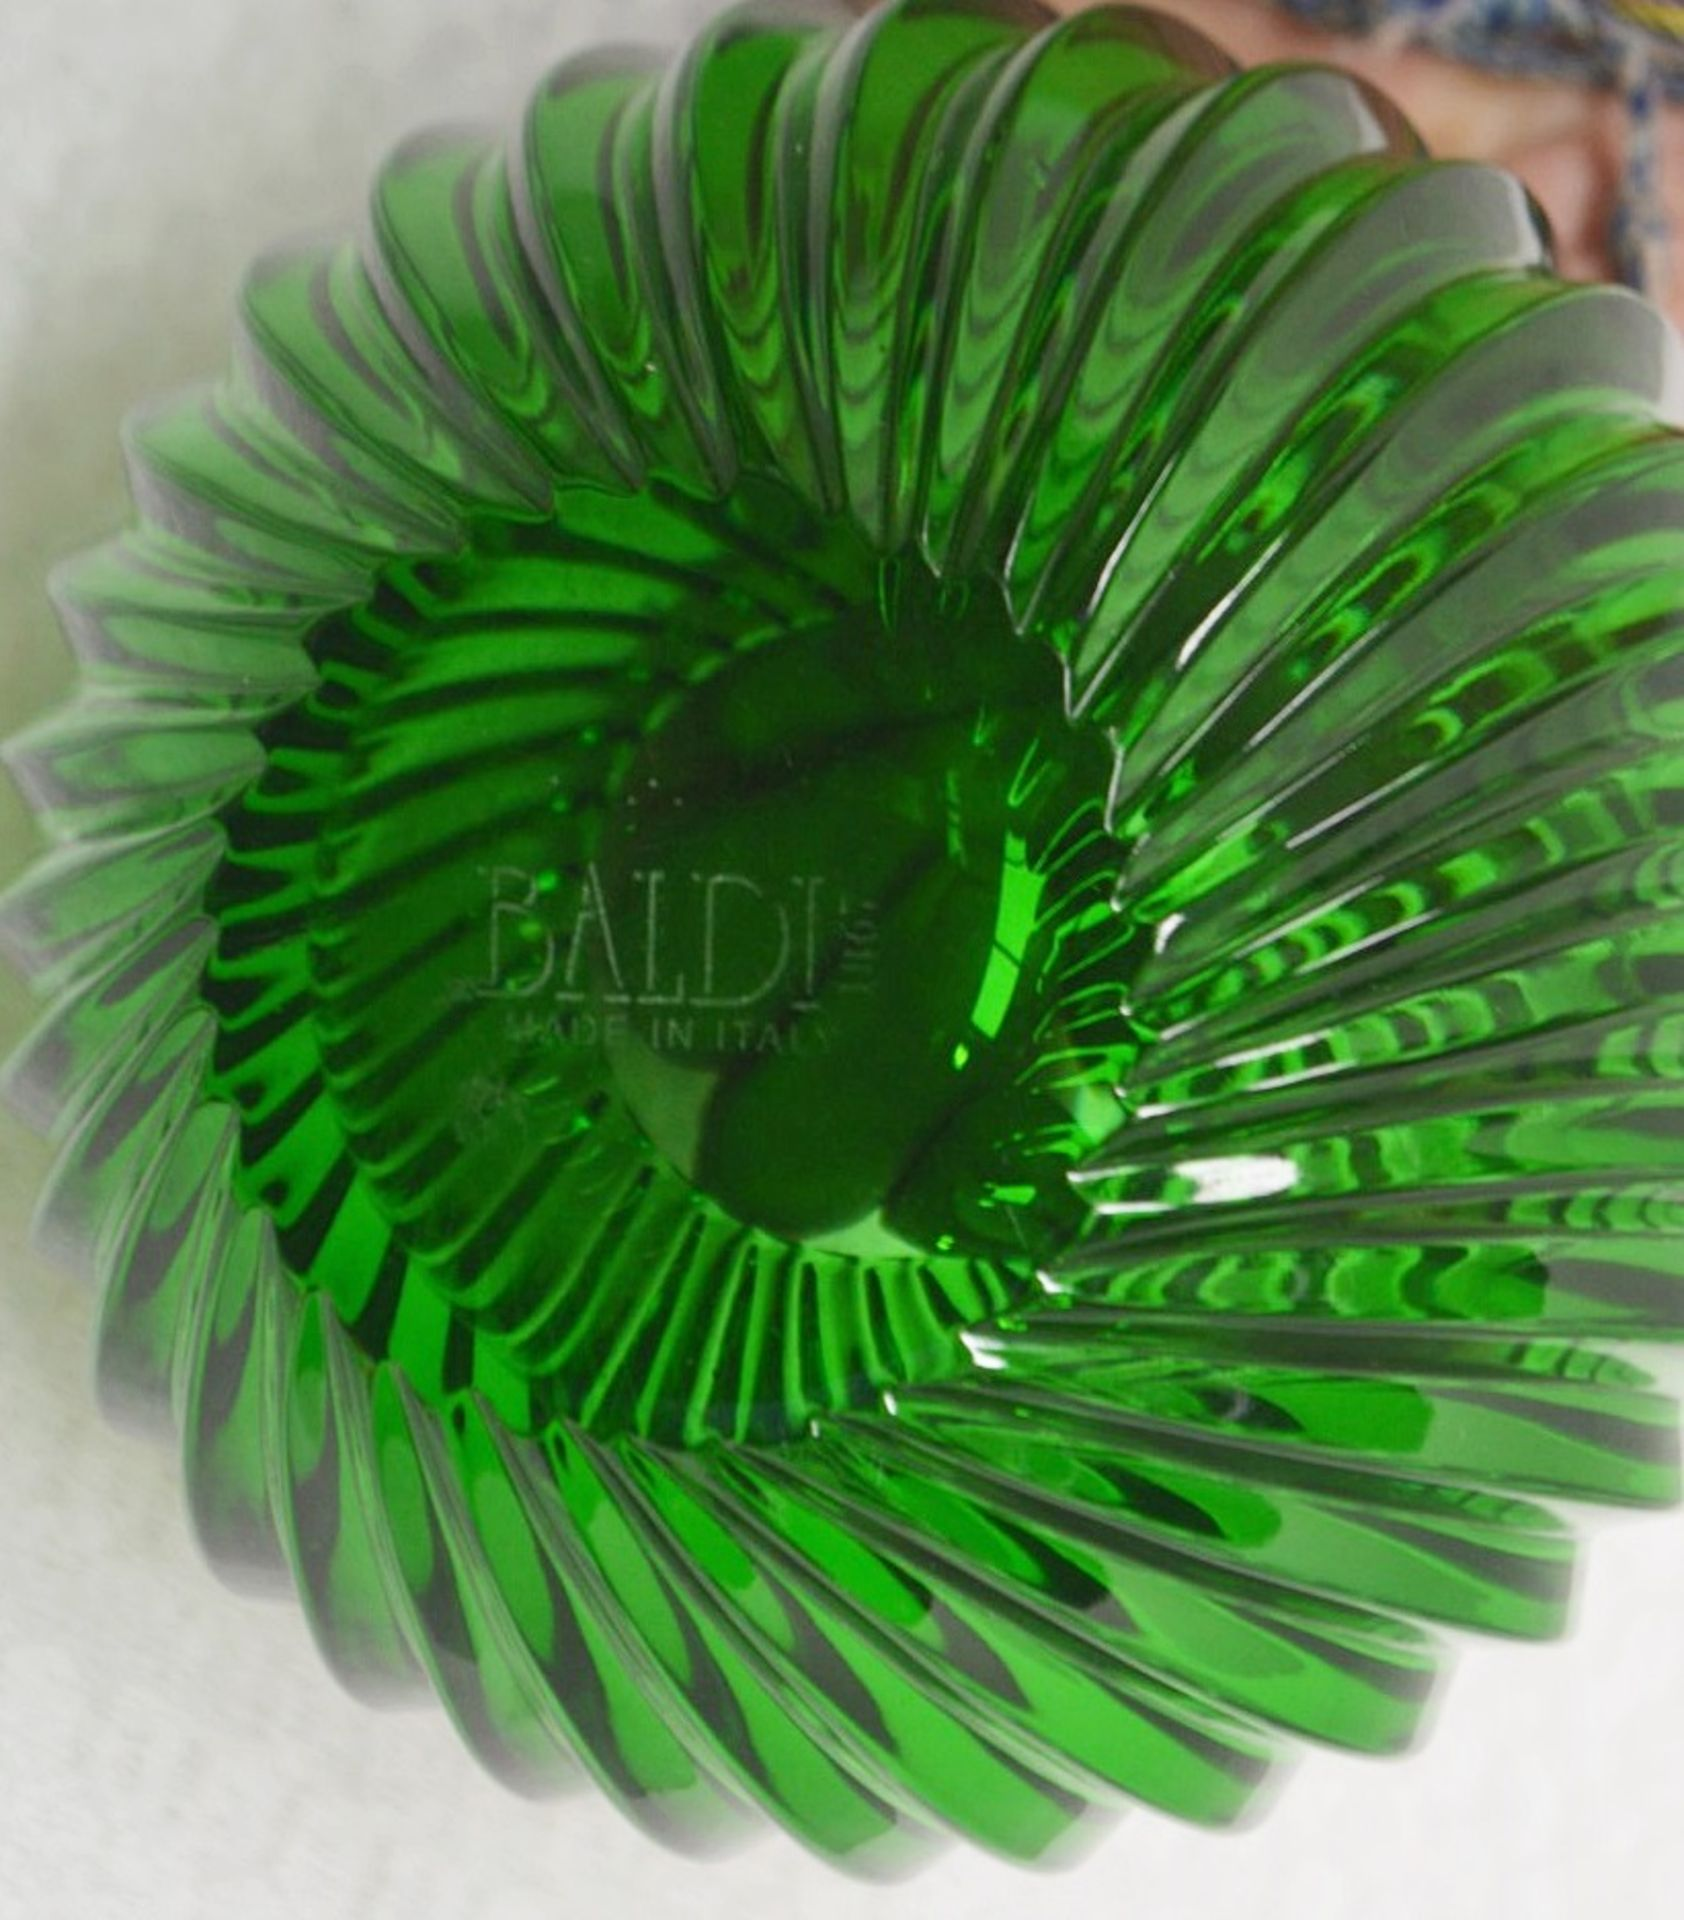 1 x BALDI 'Home Jewels' Italian Hand-crafted Artisan Crystal Bowl In Green - Dimensions: Height 10cm - Image 2 of 3